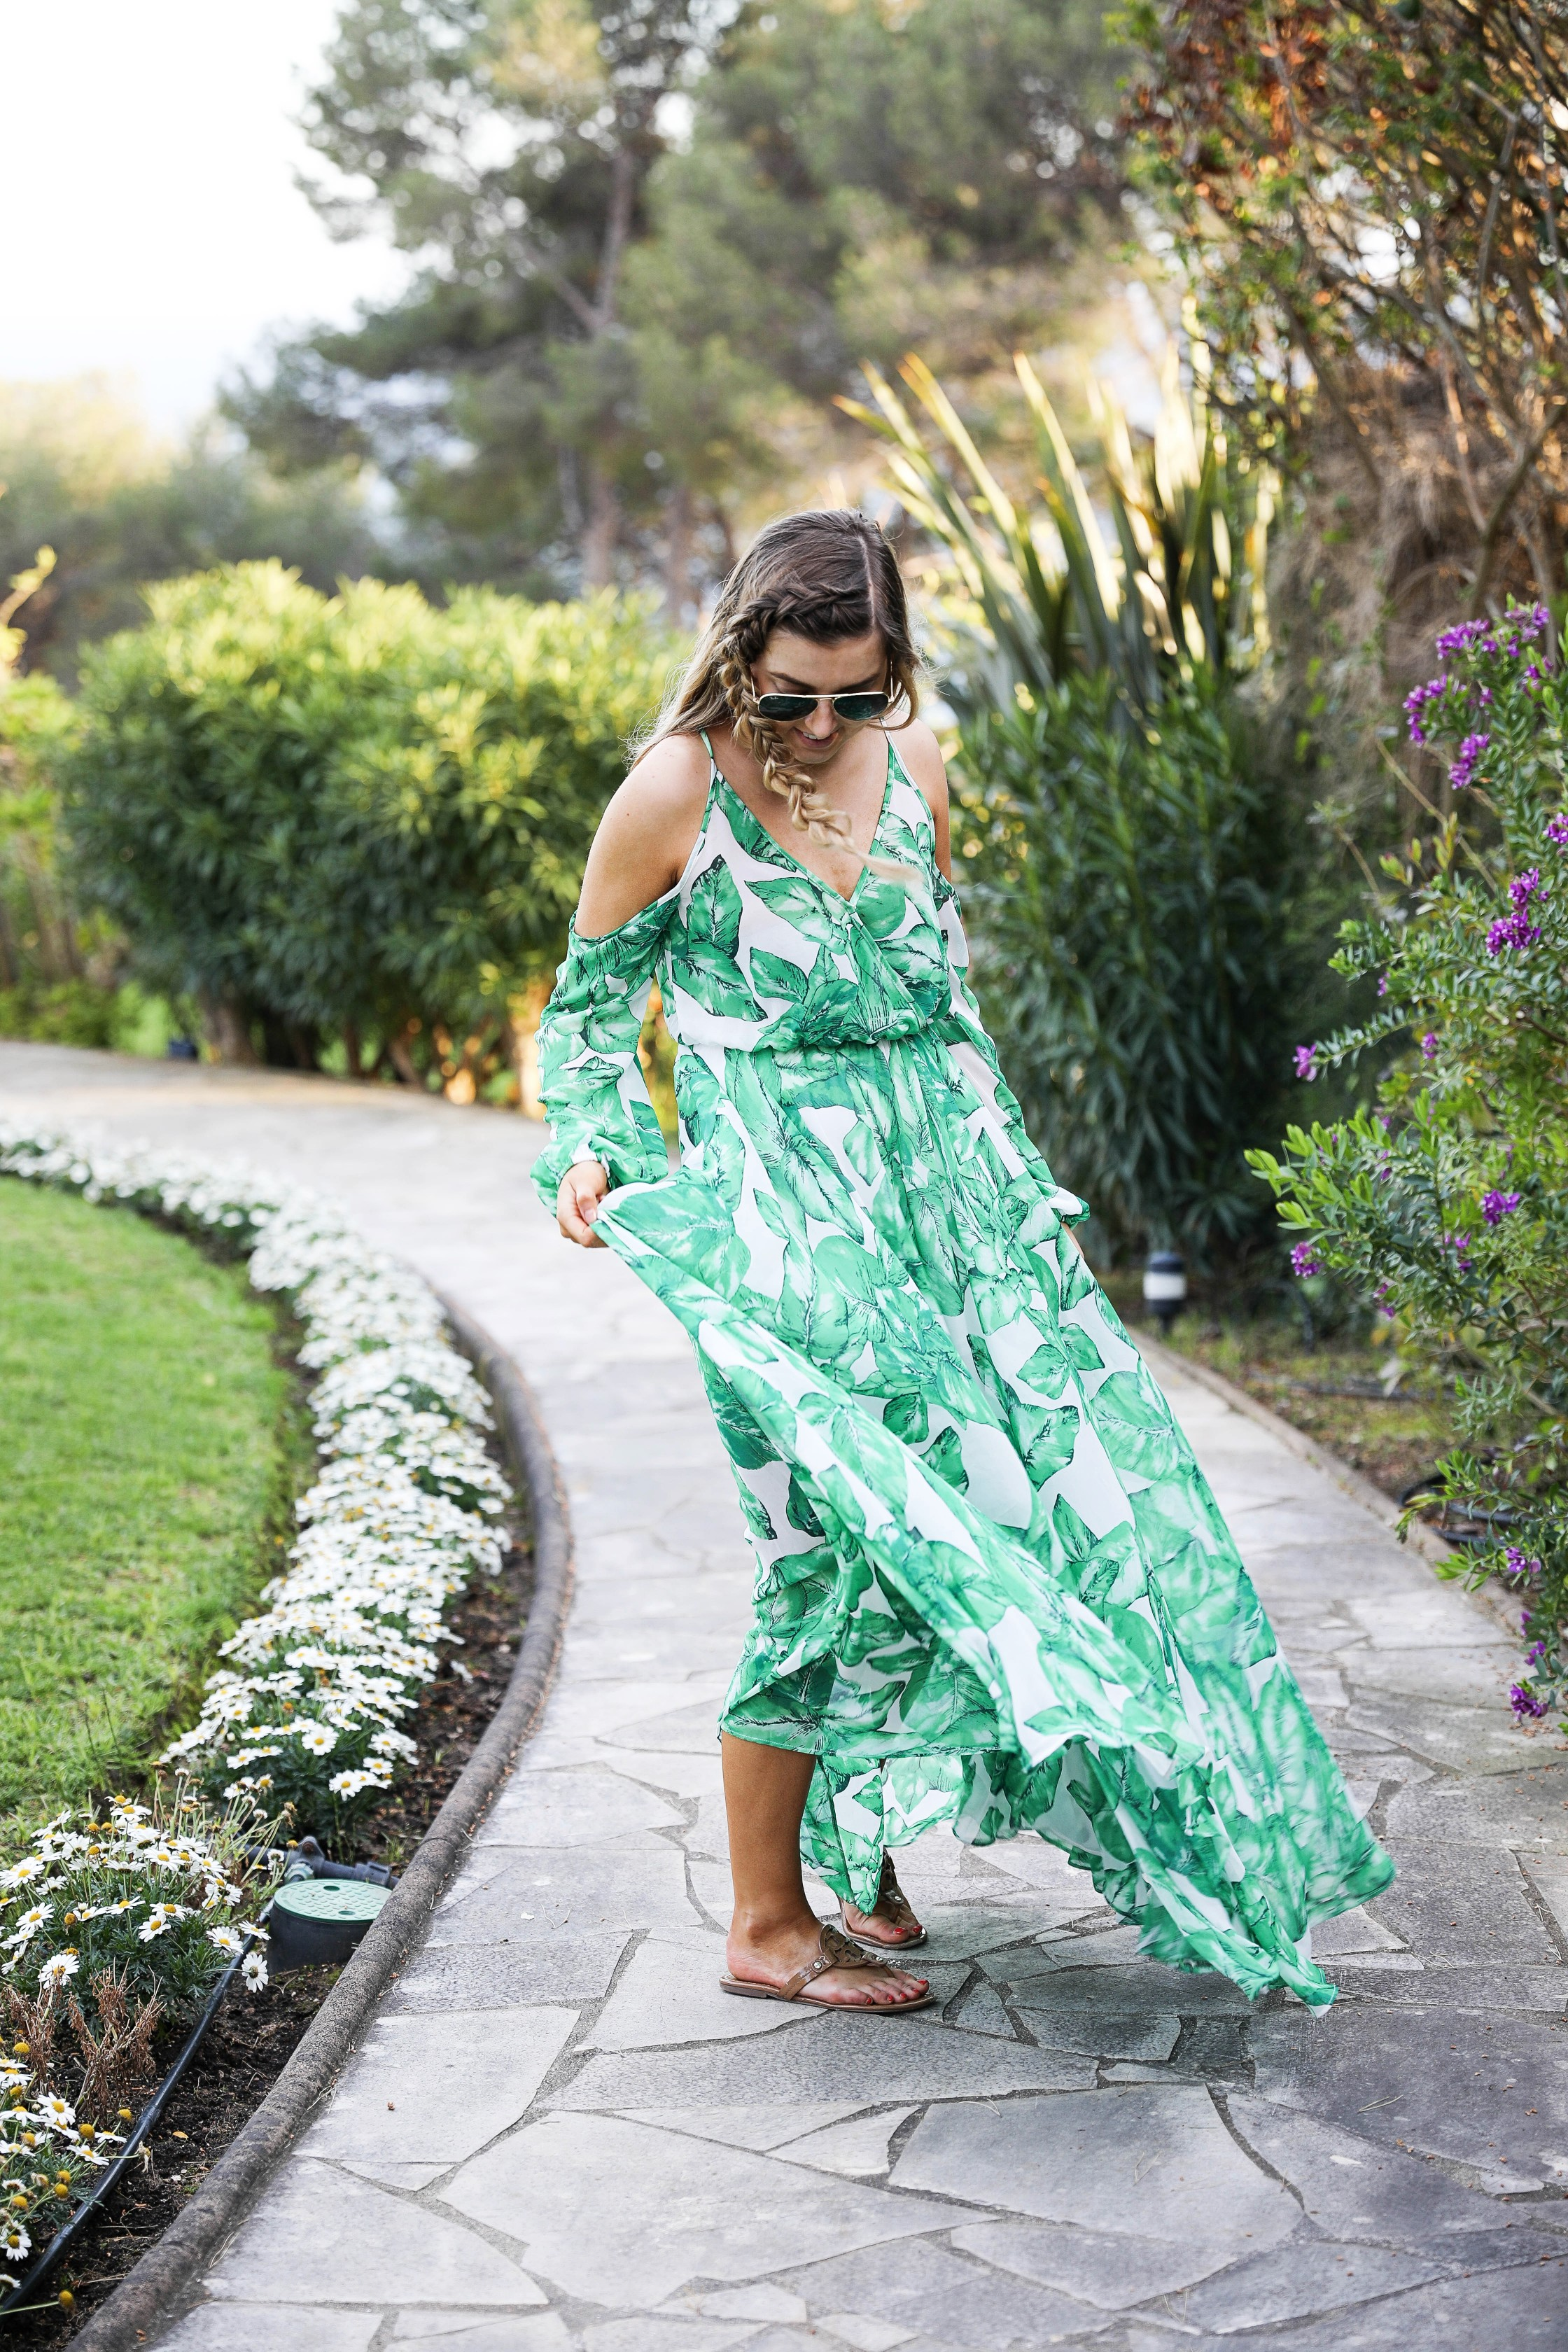 The perfect flowy island dress! I love the tropical print dress and it was a perfect outfit for Nice, France! By Lauren Lindmark on daily dose of charm dailydoseofcharm.com